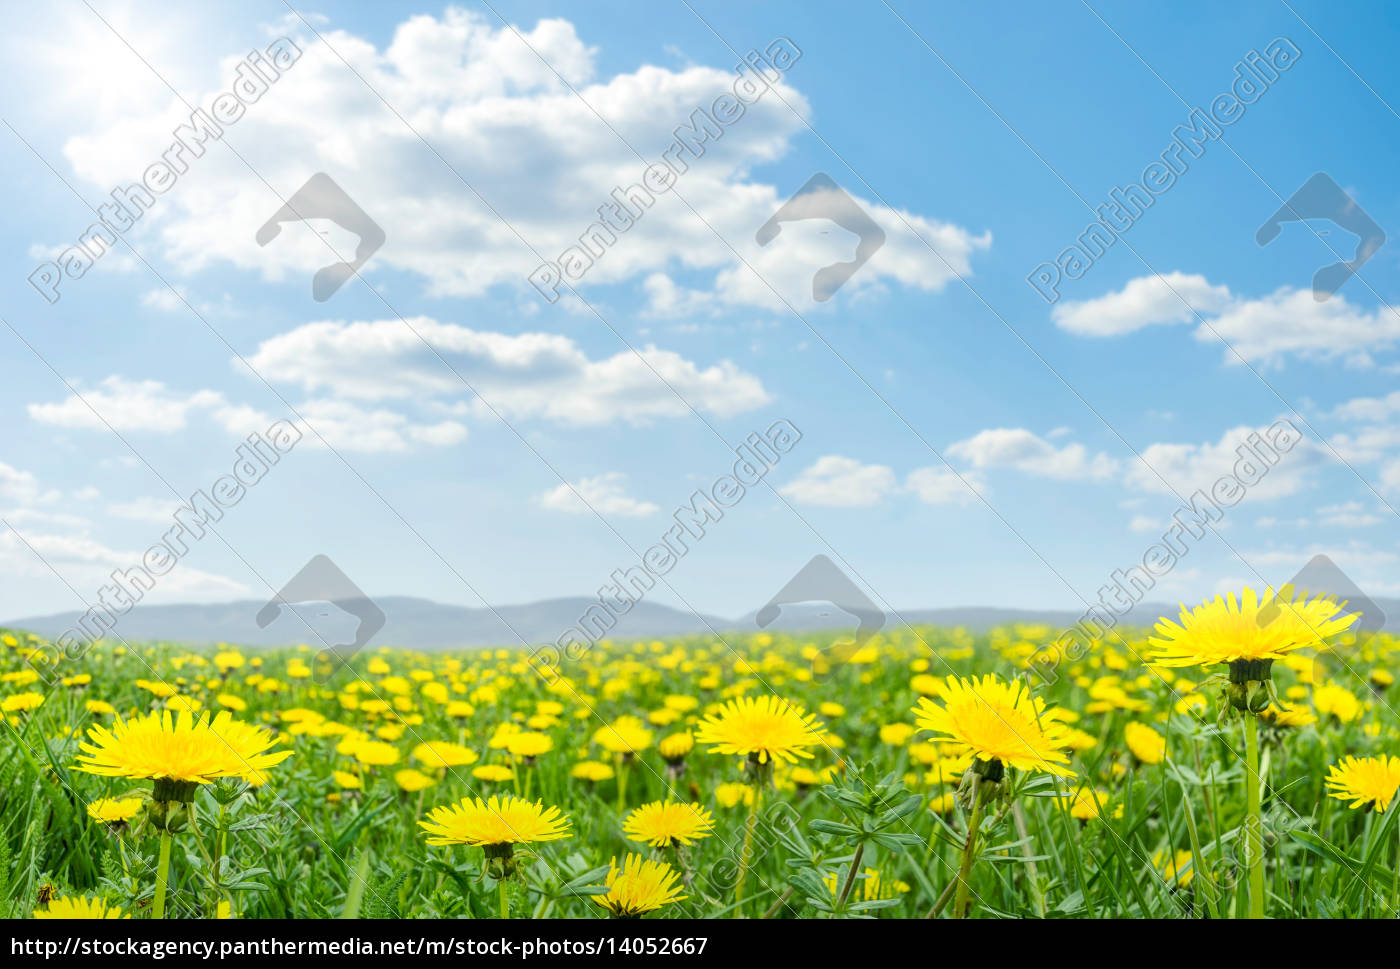 spring, meadow, with, blooming, dandelion - 14052667